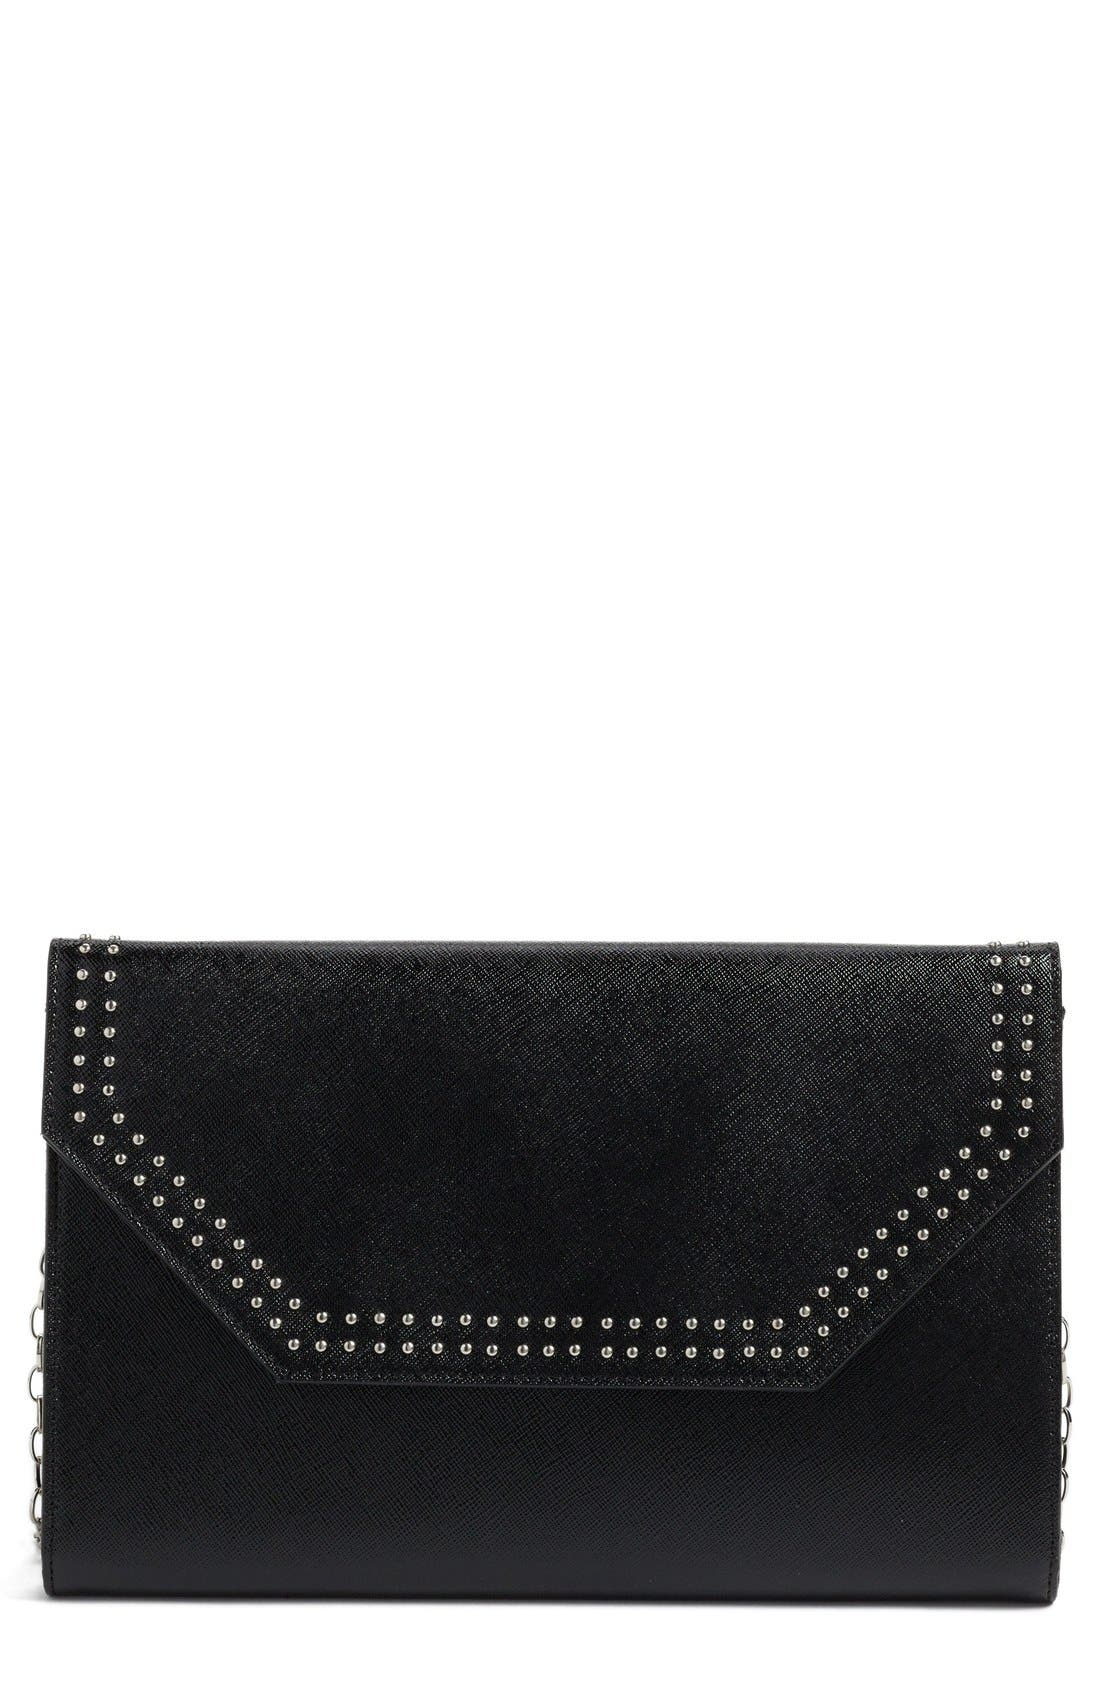 'Angle' Studded Leather Convertible Clutch,                             Main thumbnail 1, color,                             001